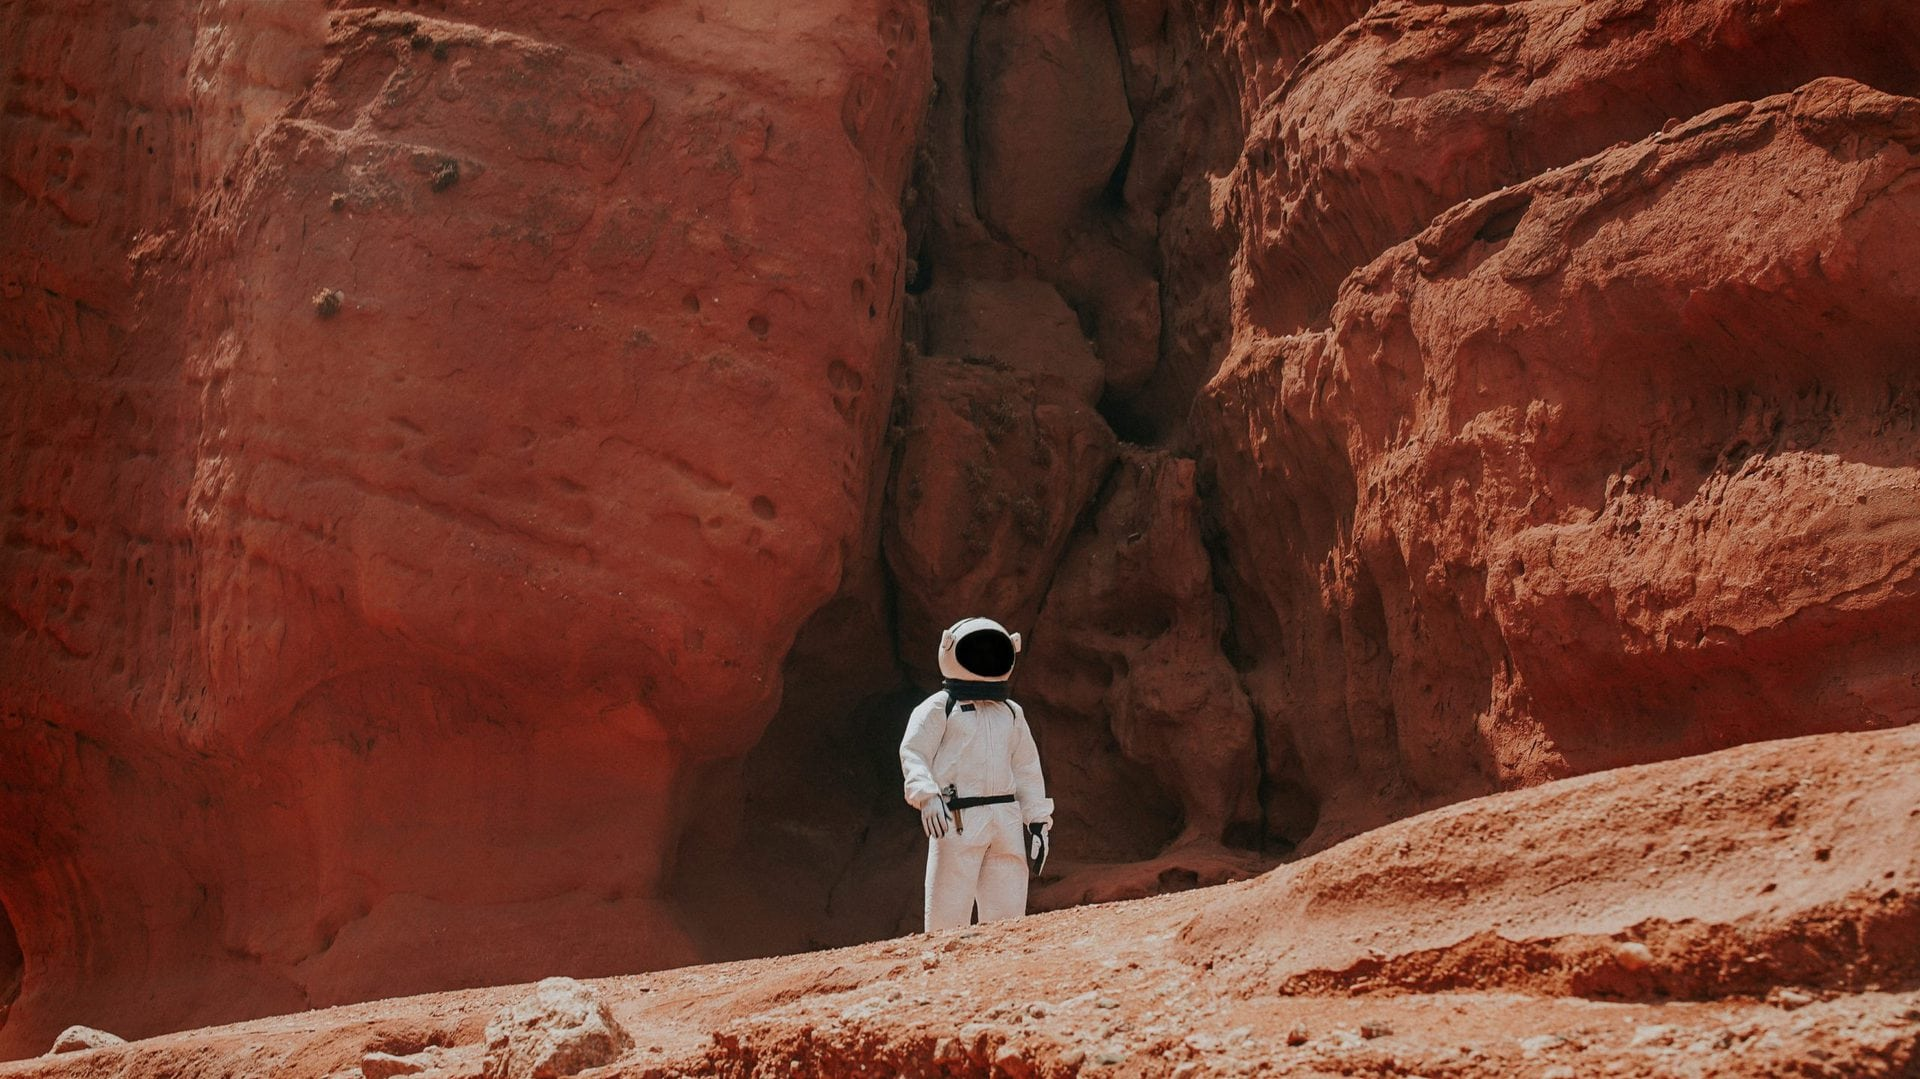 Why our future is not on Mars – as much as I'm psyched to go there